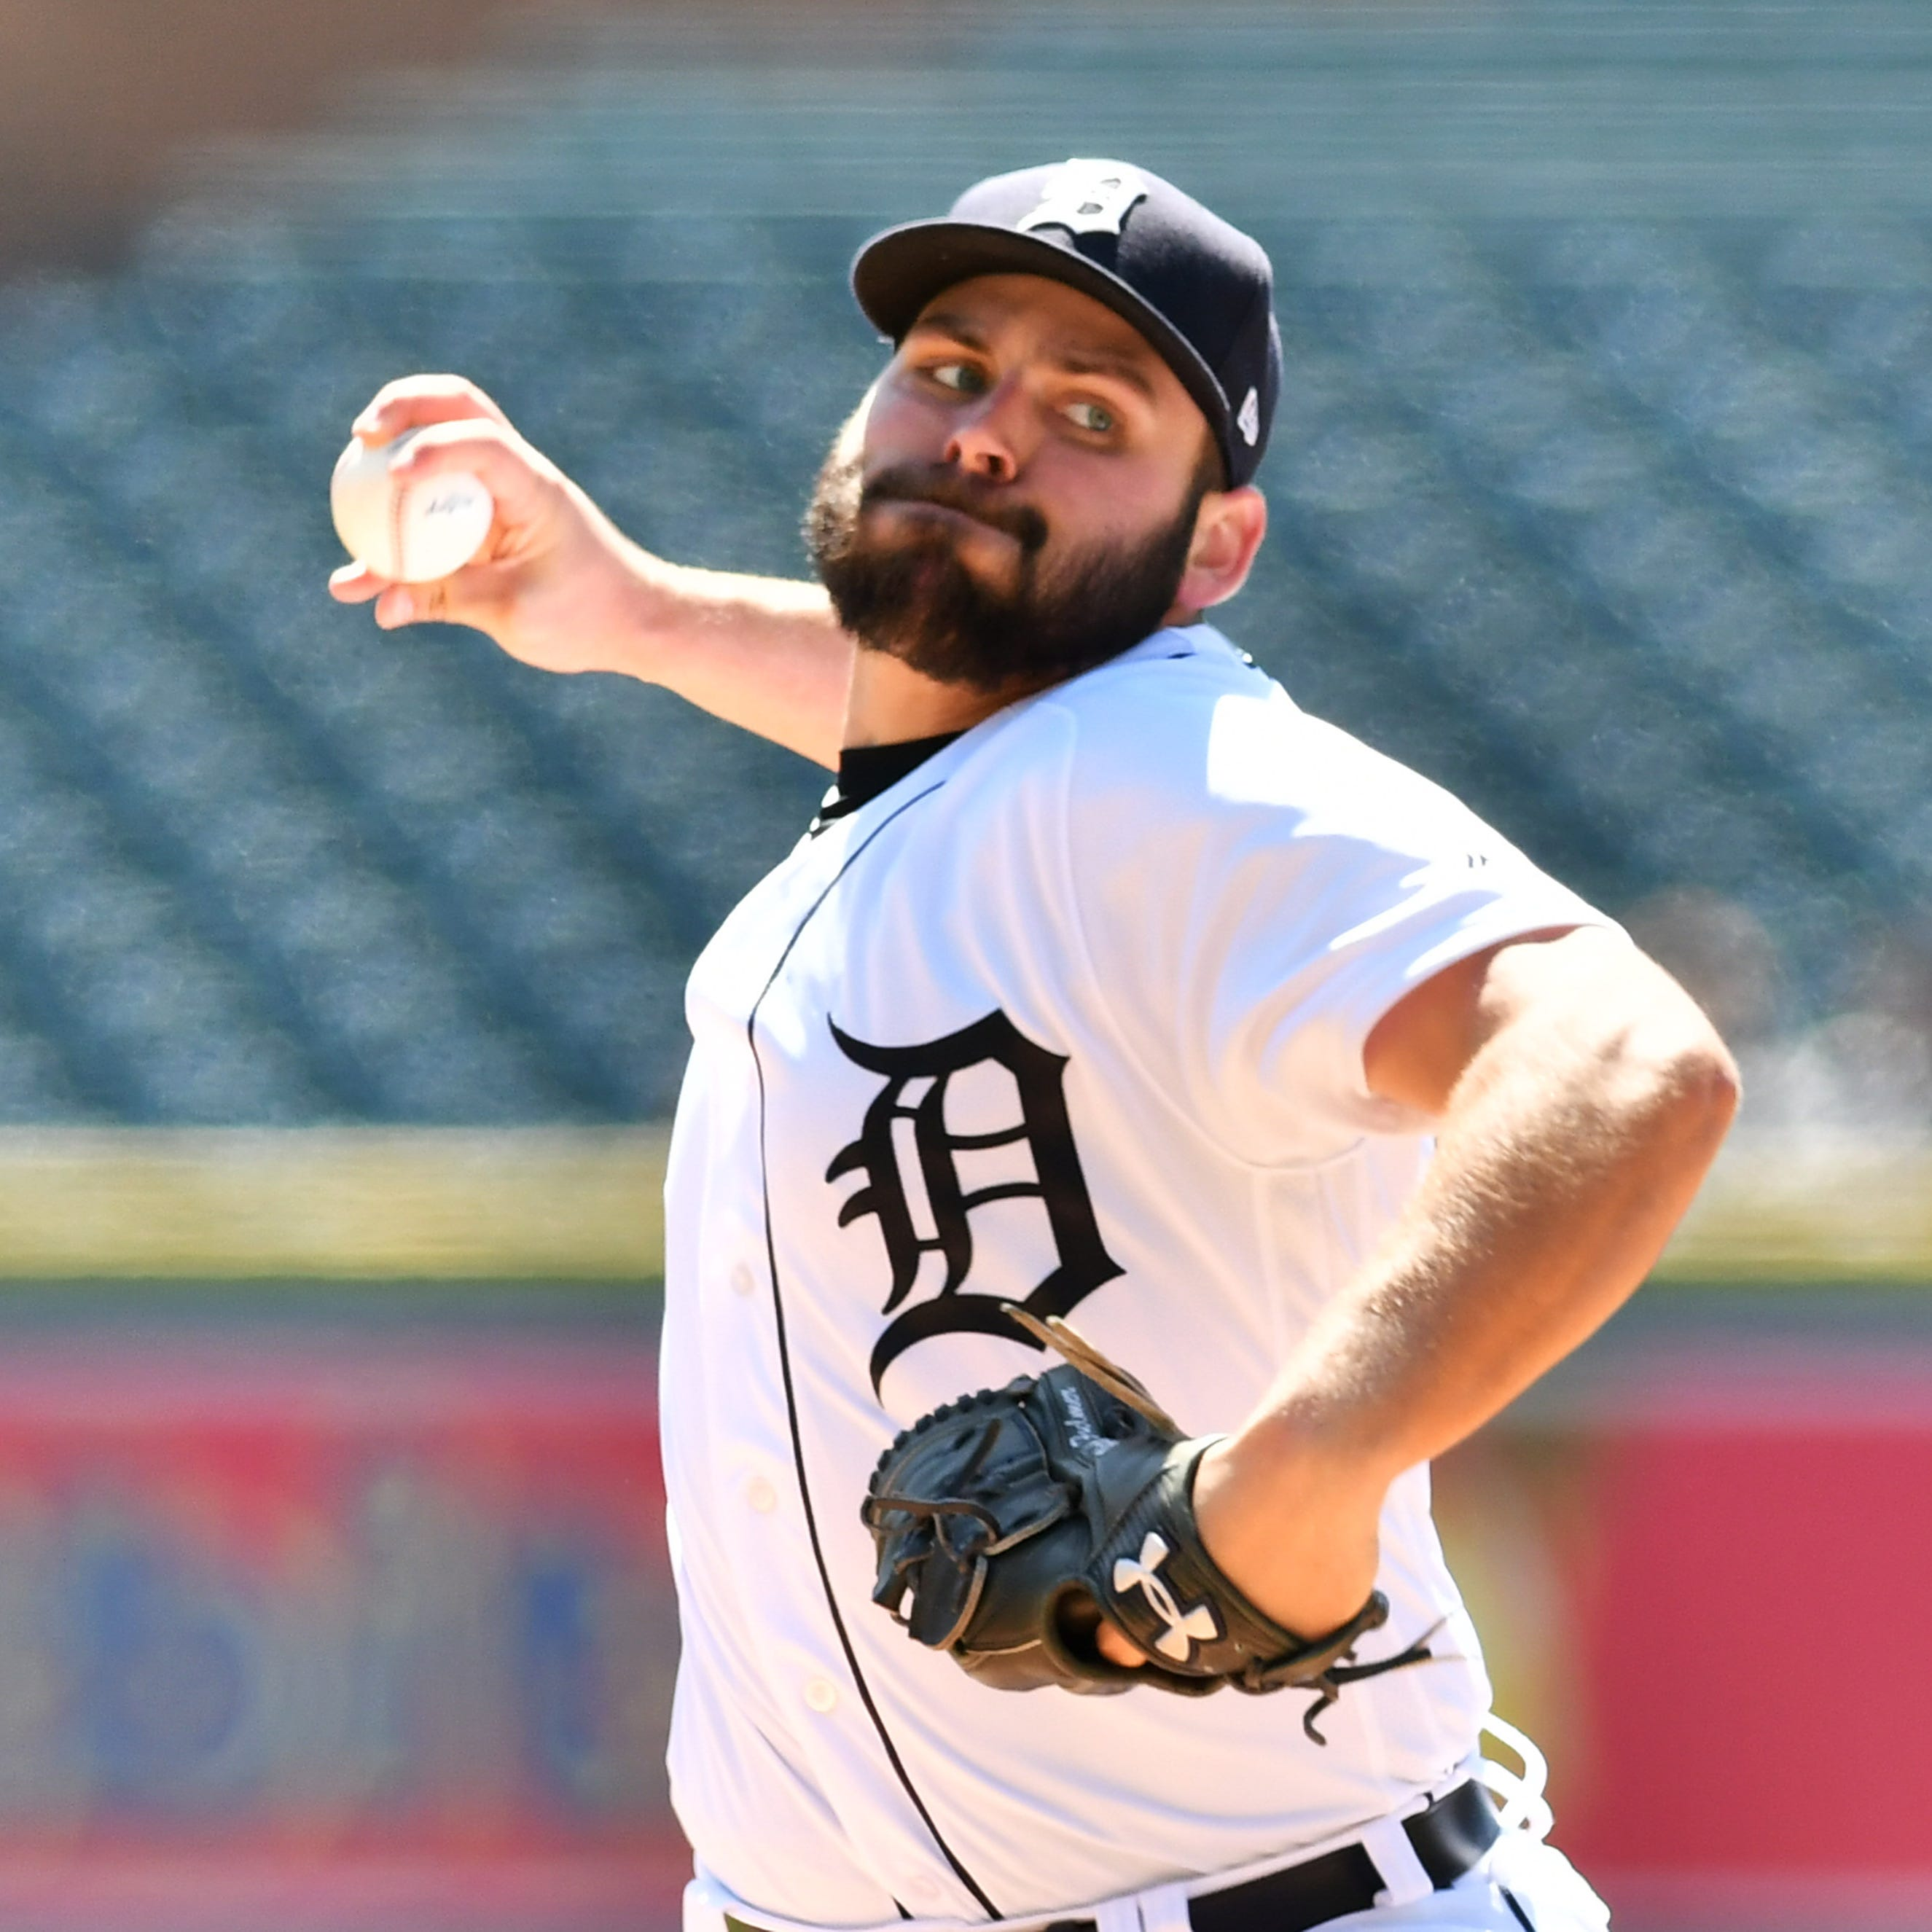 Michael Fulmer brilliant in first rehab start, but Tigers will take it slow